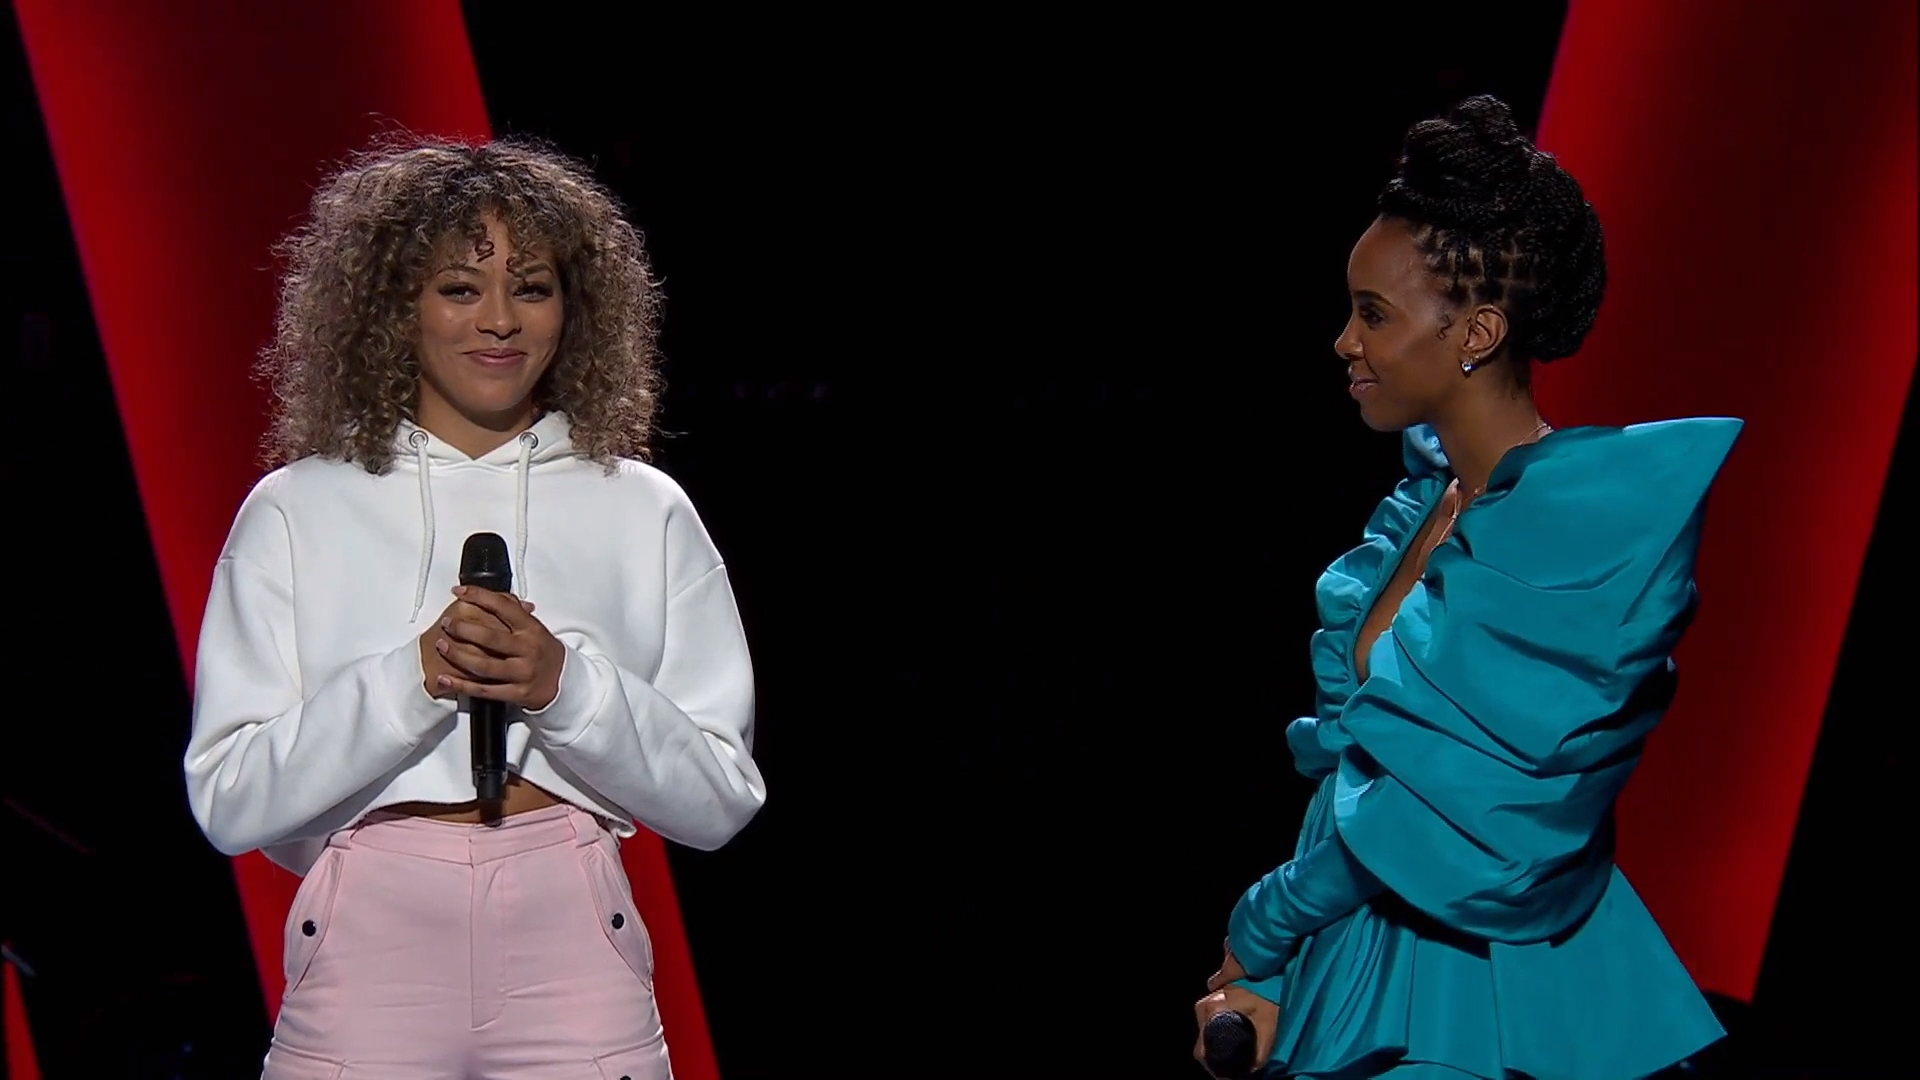 Kelly Rowland sings with artist during Blind Auditions